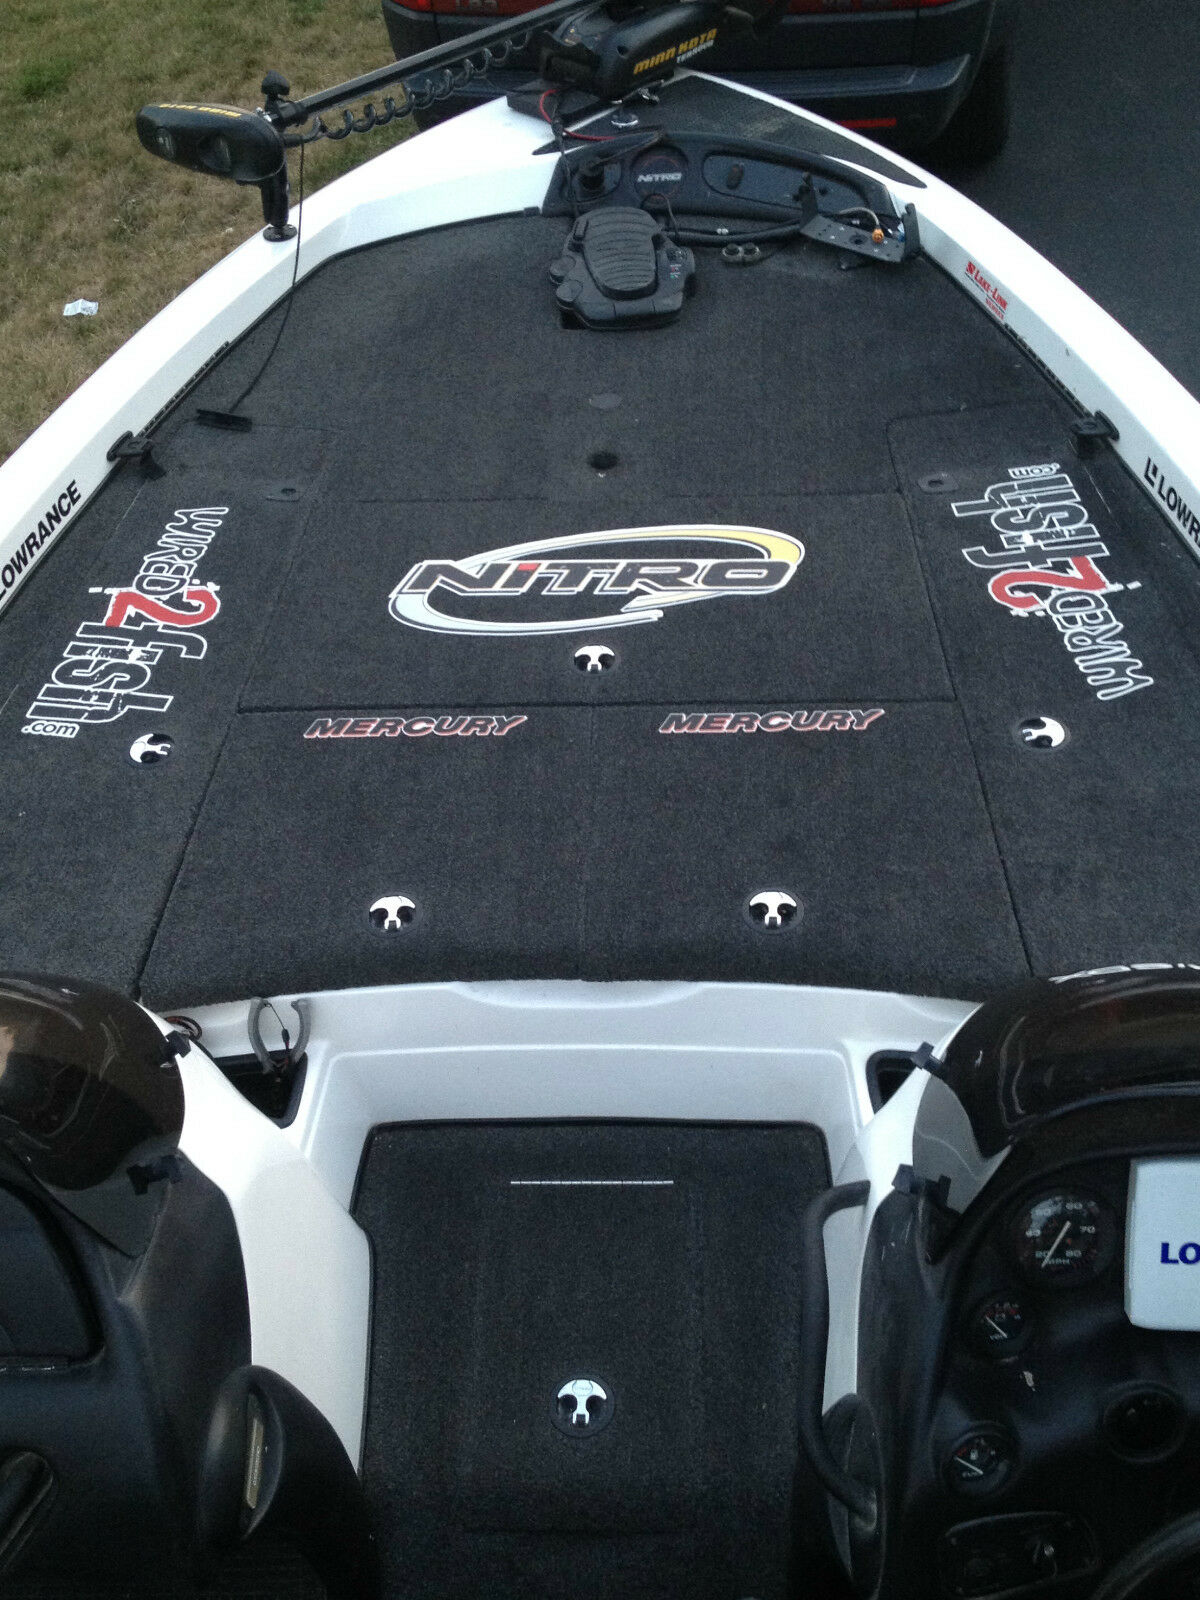 Large  Carpet Graphic Red Pro Craft Boat Decal Stickers - Boat decals